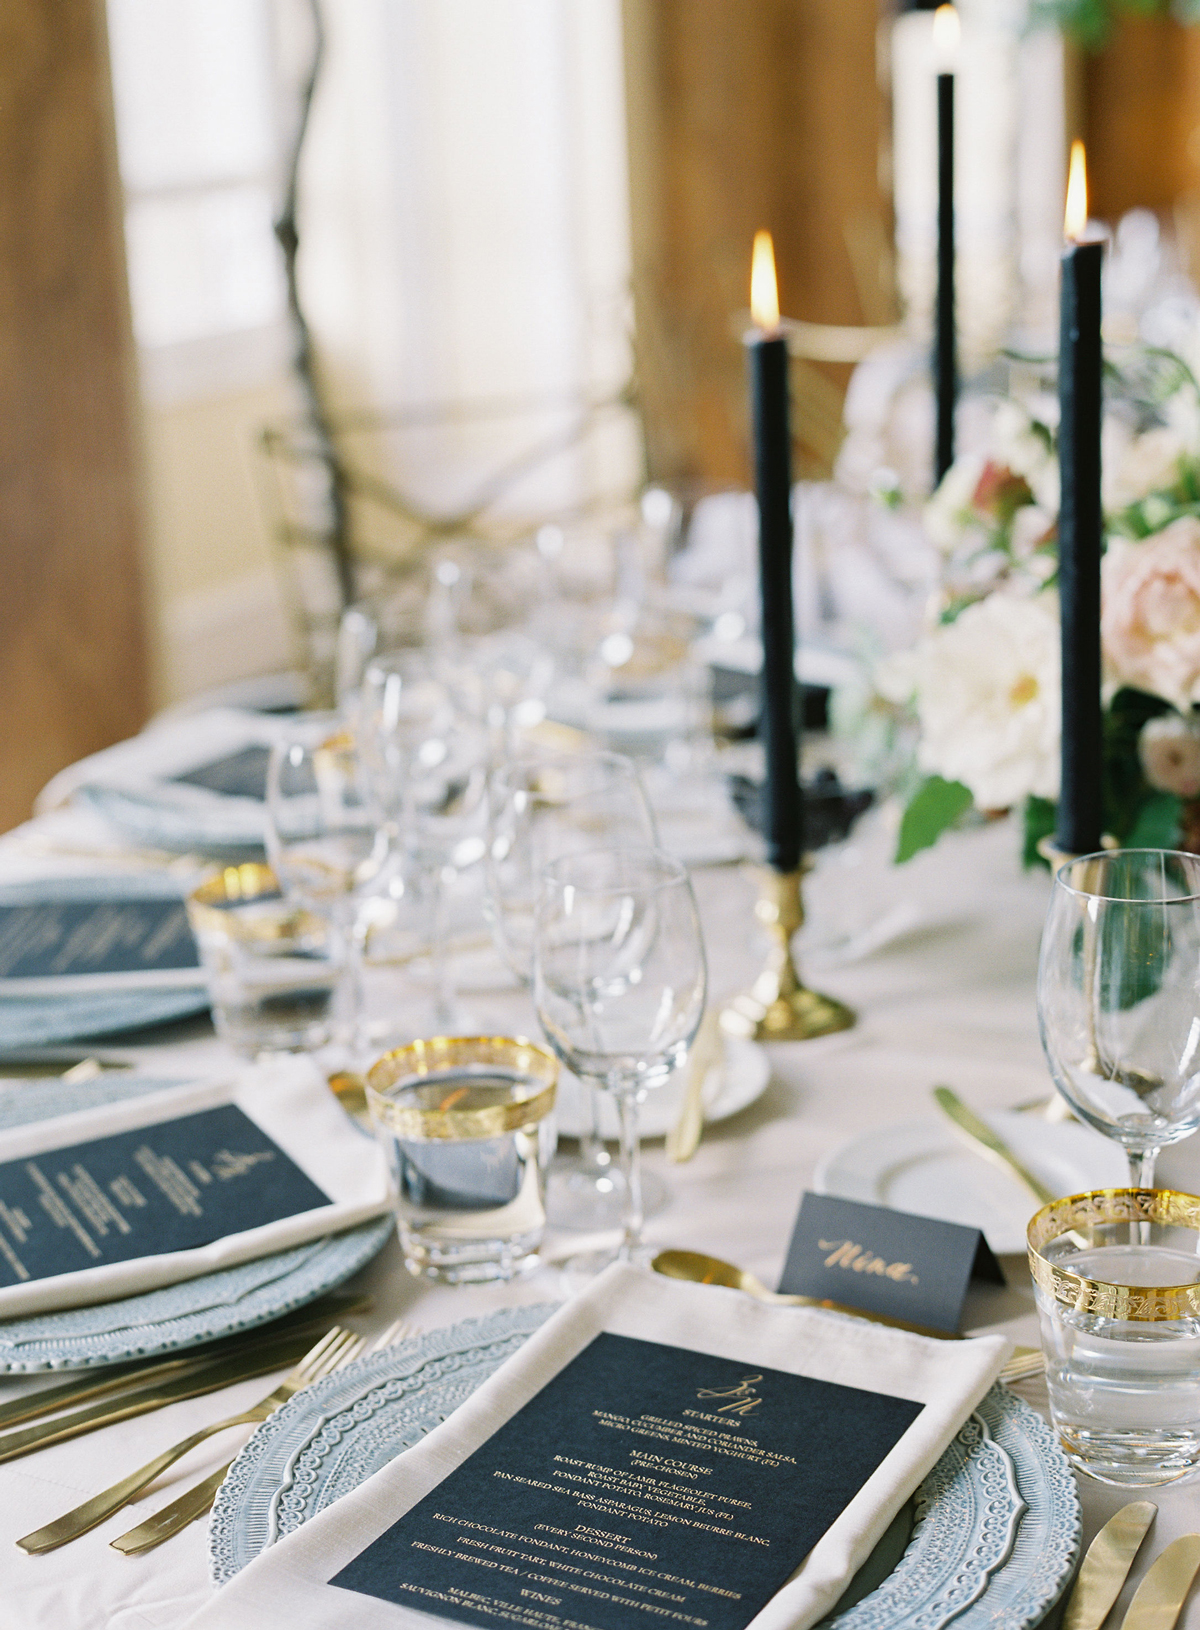 black menus and tall candles on pastel table decor